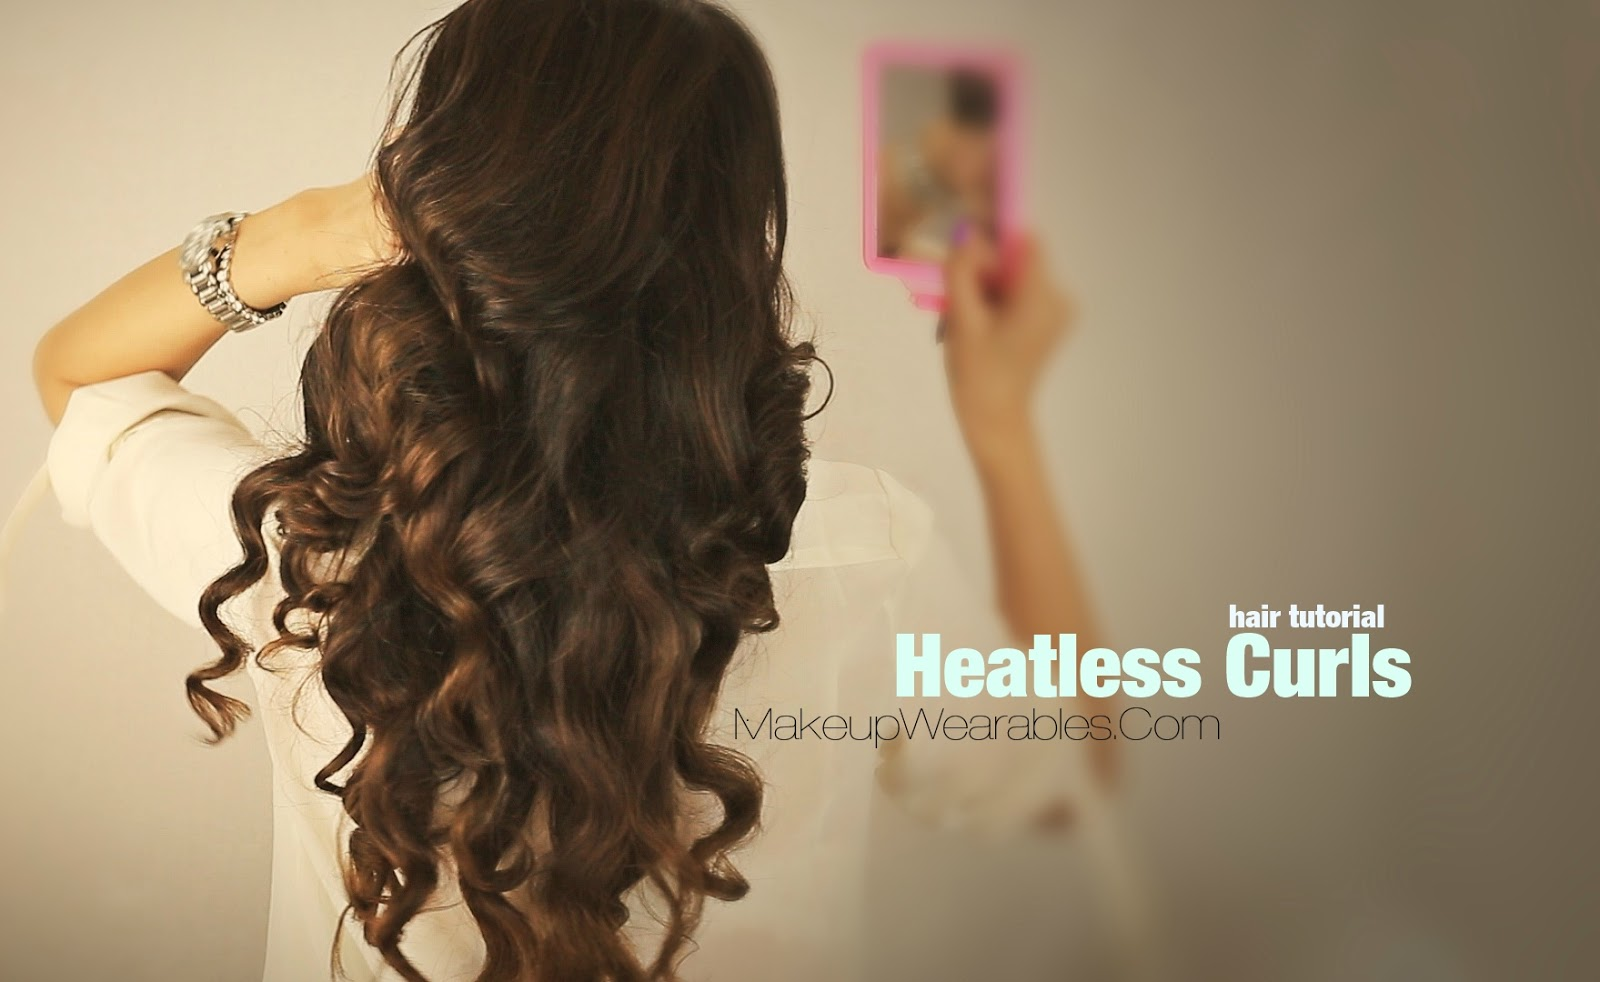 Hairstyles For Long Hair No Heat : your hair without heat cute curly hairstyles for medium long hair ...